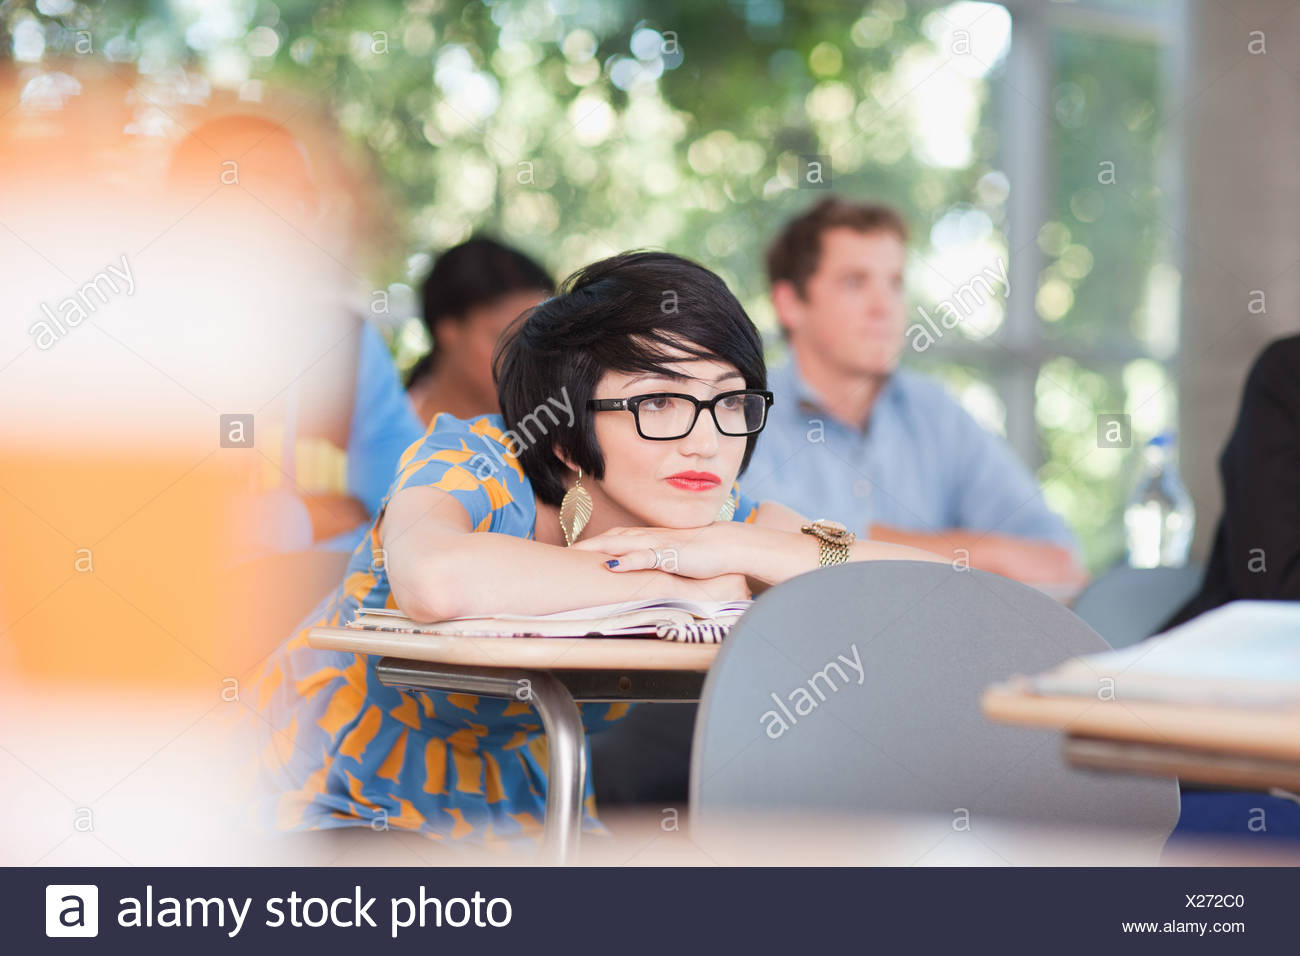 Students in classroom Photo Stock